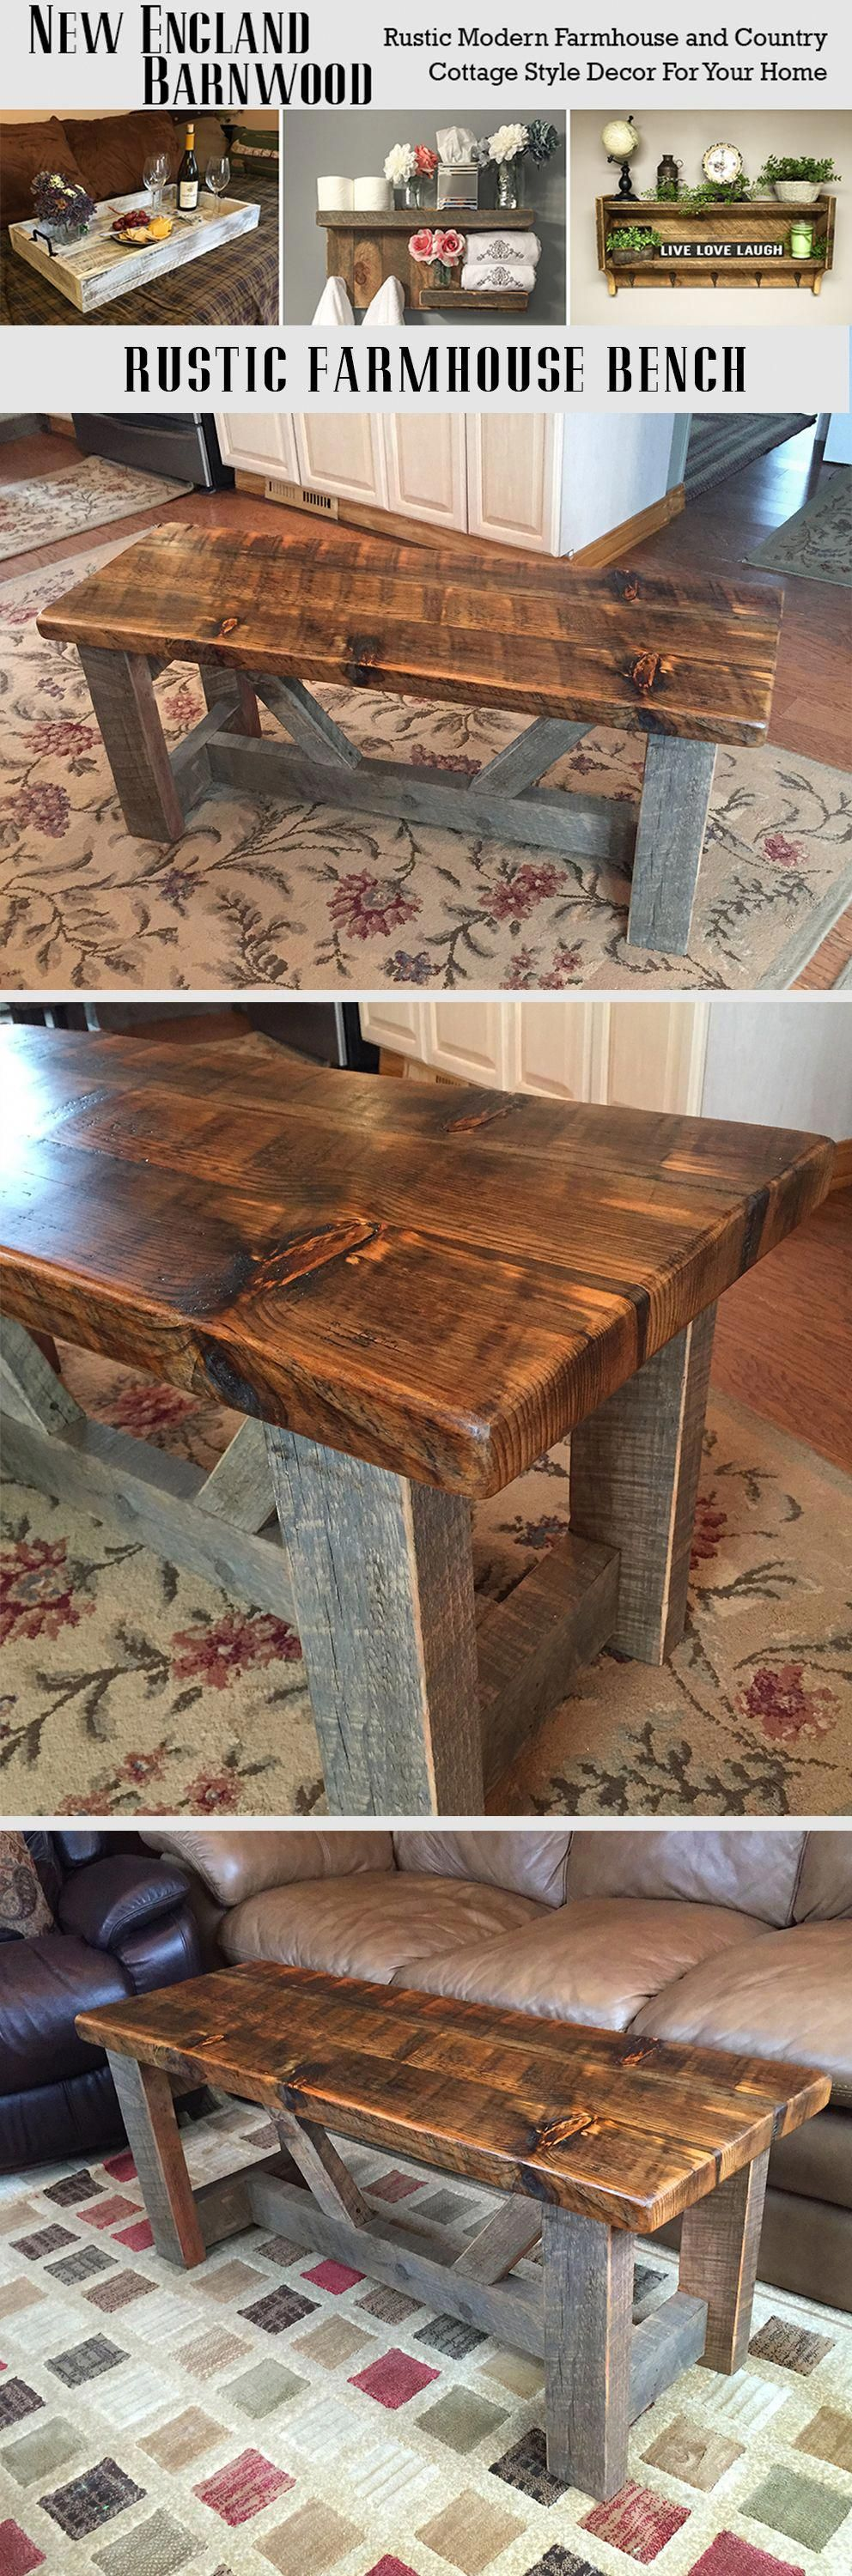 Beautifully Rustic Farmhouse Bench I Love It woodworkingbench